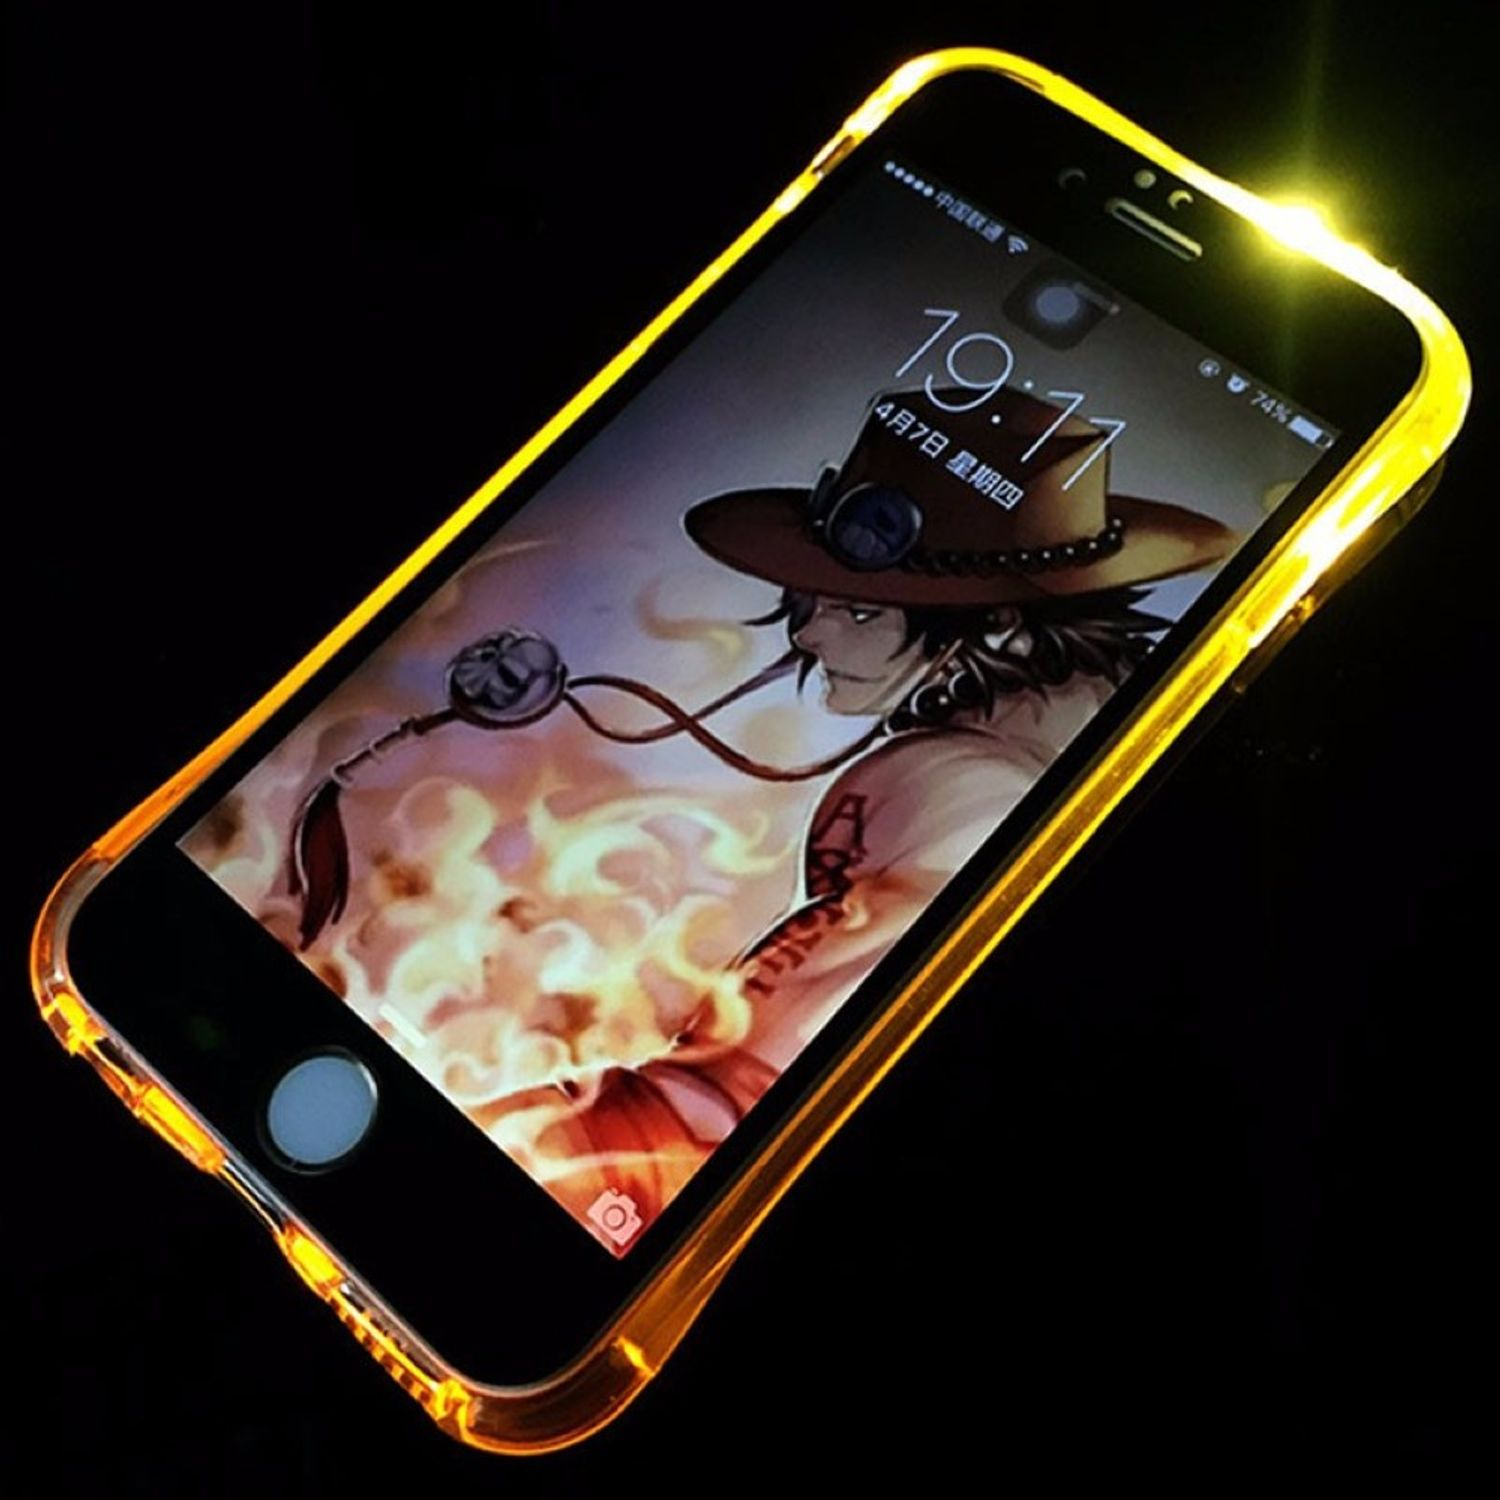 buy popular 61639 52f63 Details about Case LED Light Call for Mobile Phone Apple IPHONE 8 plus Gold  Case Bumper